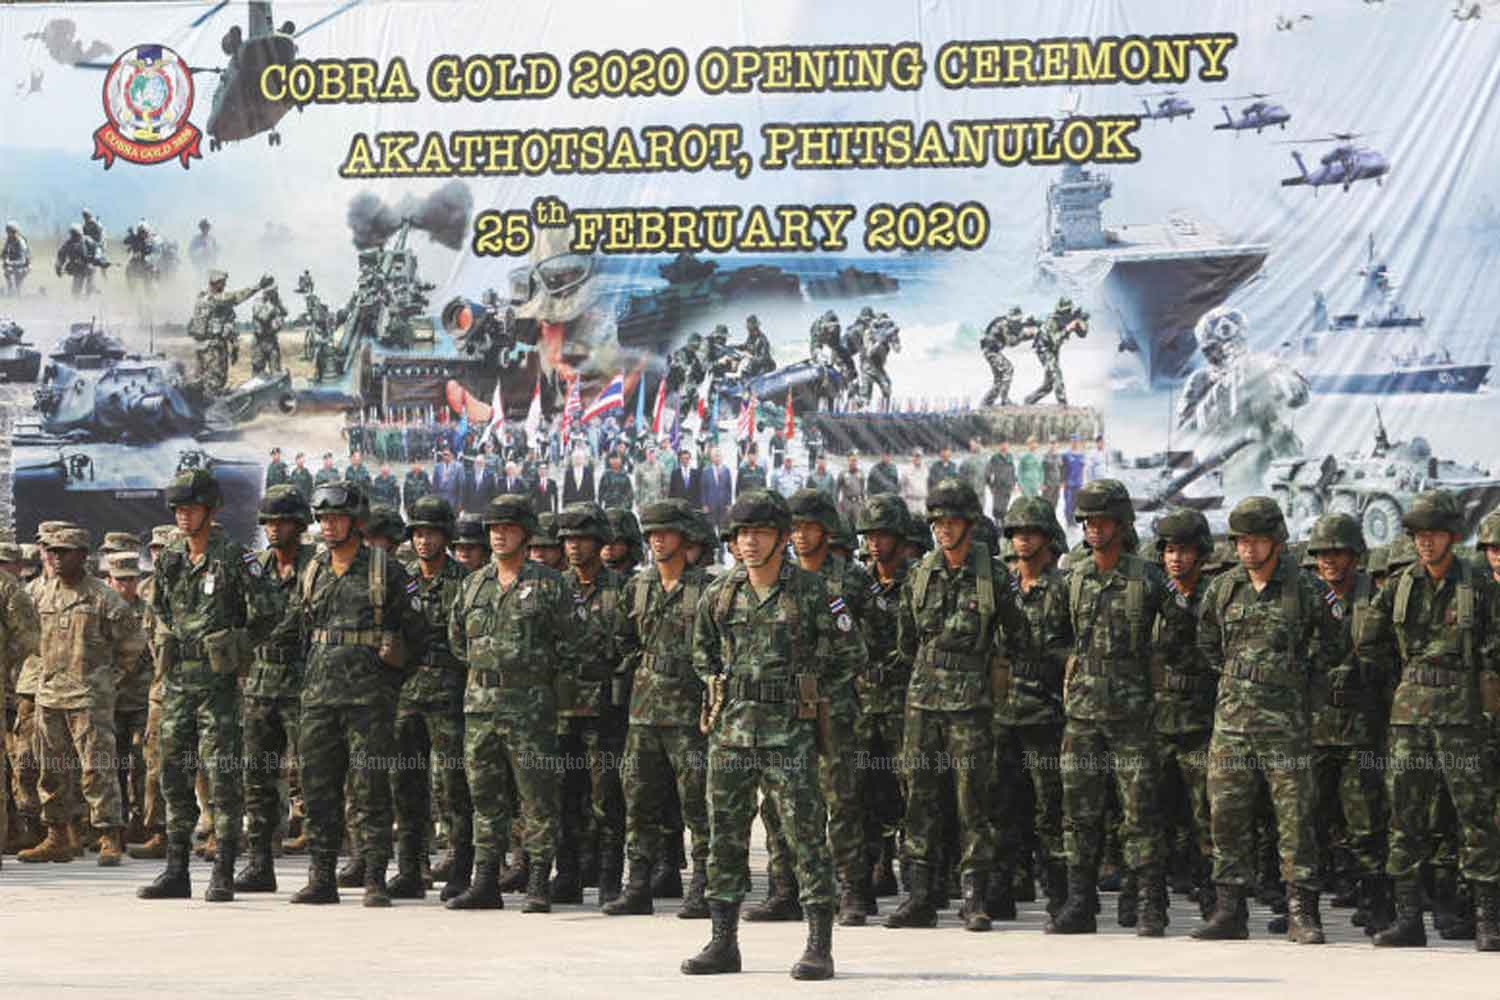 The opening parade of the Cobra Gold 2020 military exercise in the northern province of Phitsanulok on Tuesday. (Photo by Pattarapong Chatpattarasill)